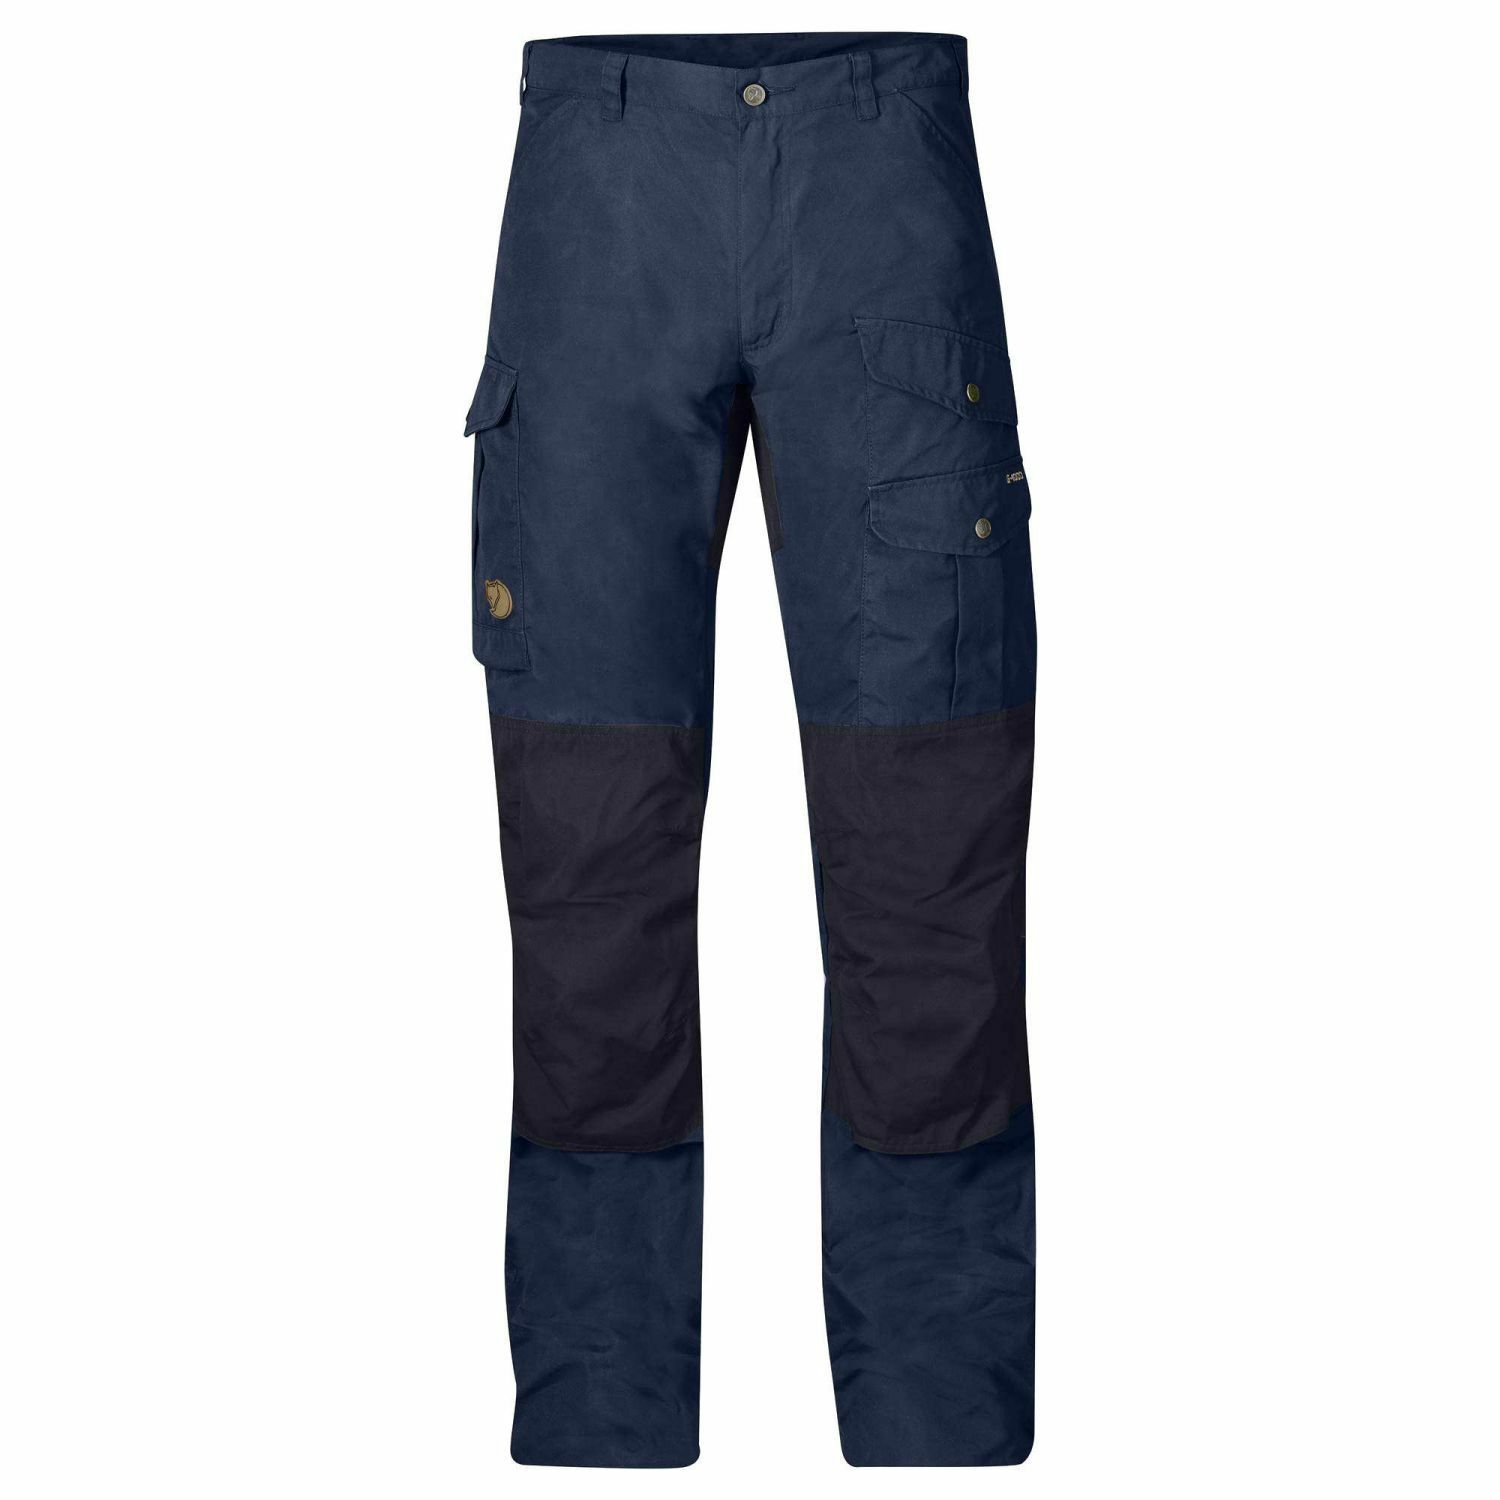 Fjäll Räven Hose Barents Barents Barents Pro Trousers Storm Night Sky Outdoorhose Angelhose aae4f1